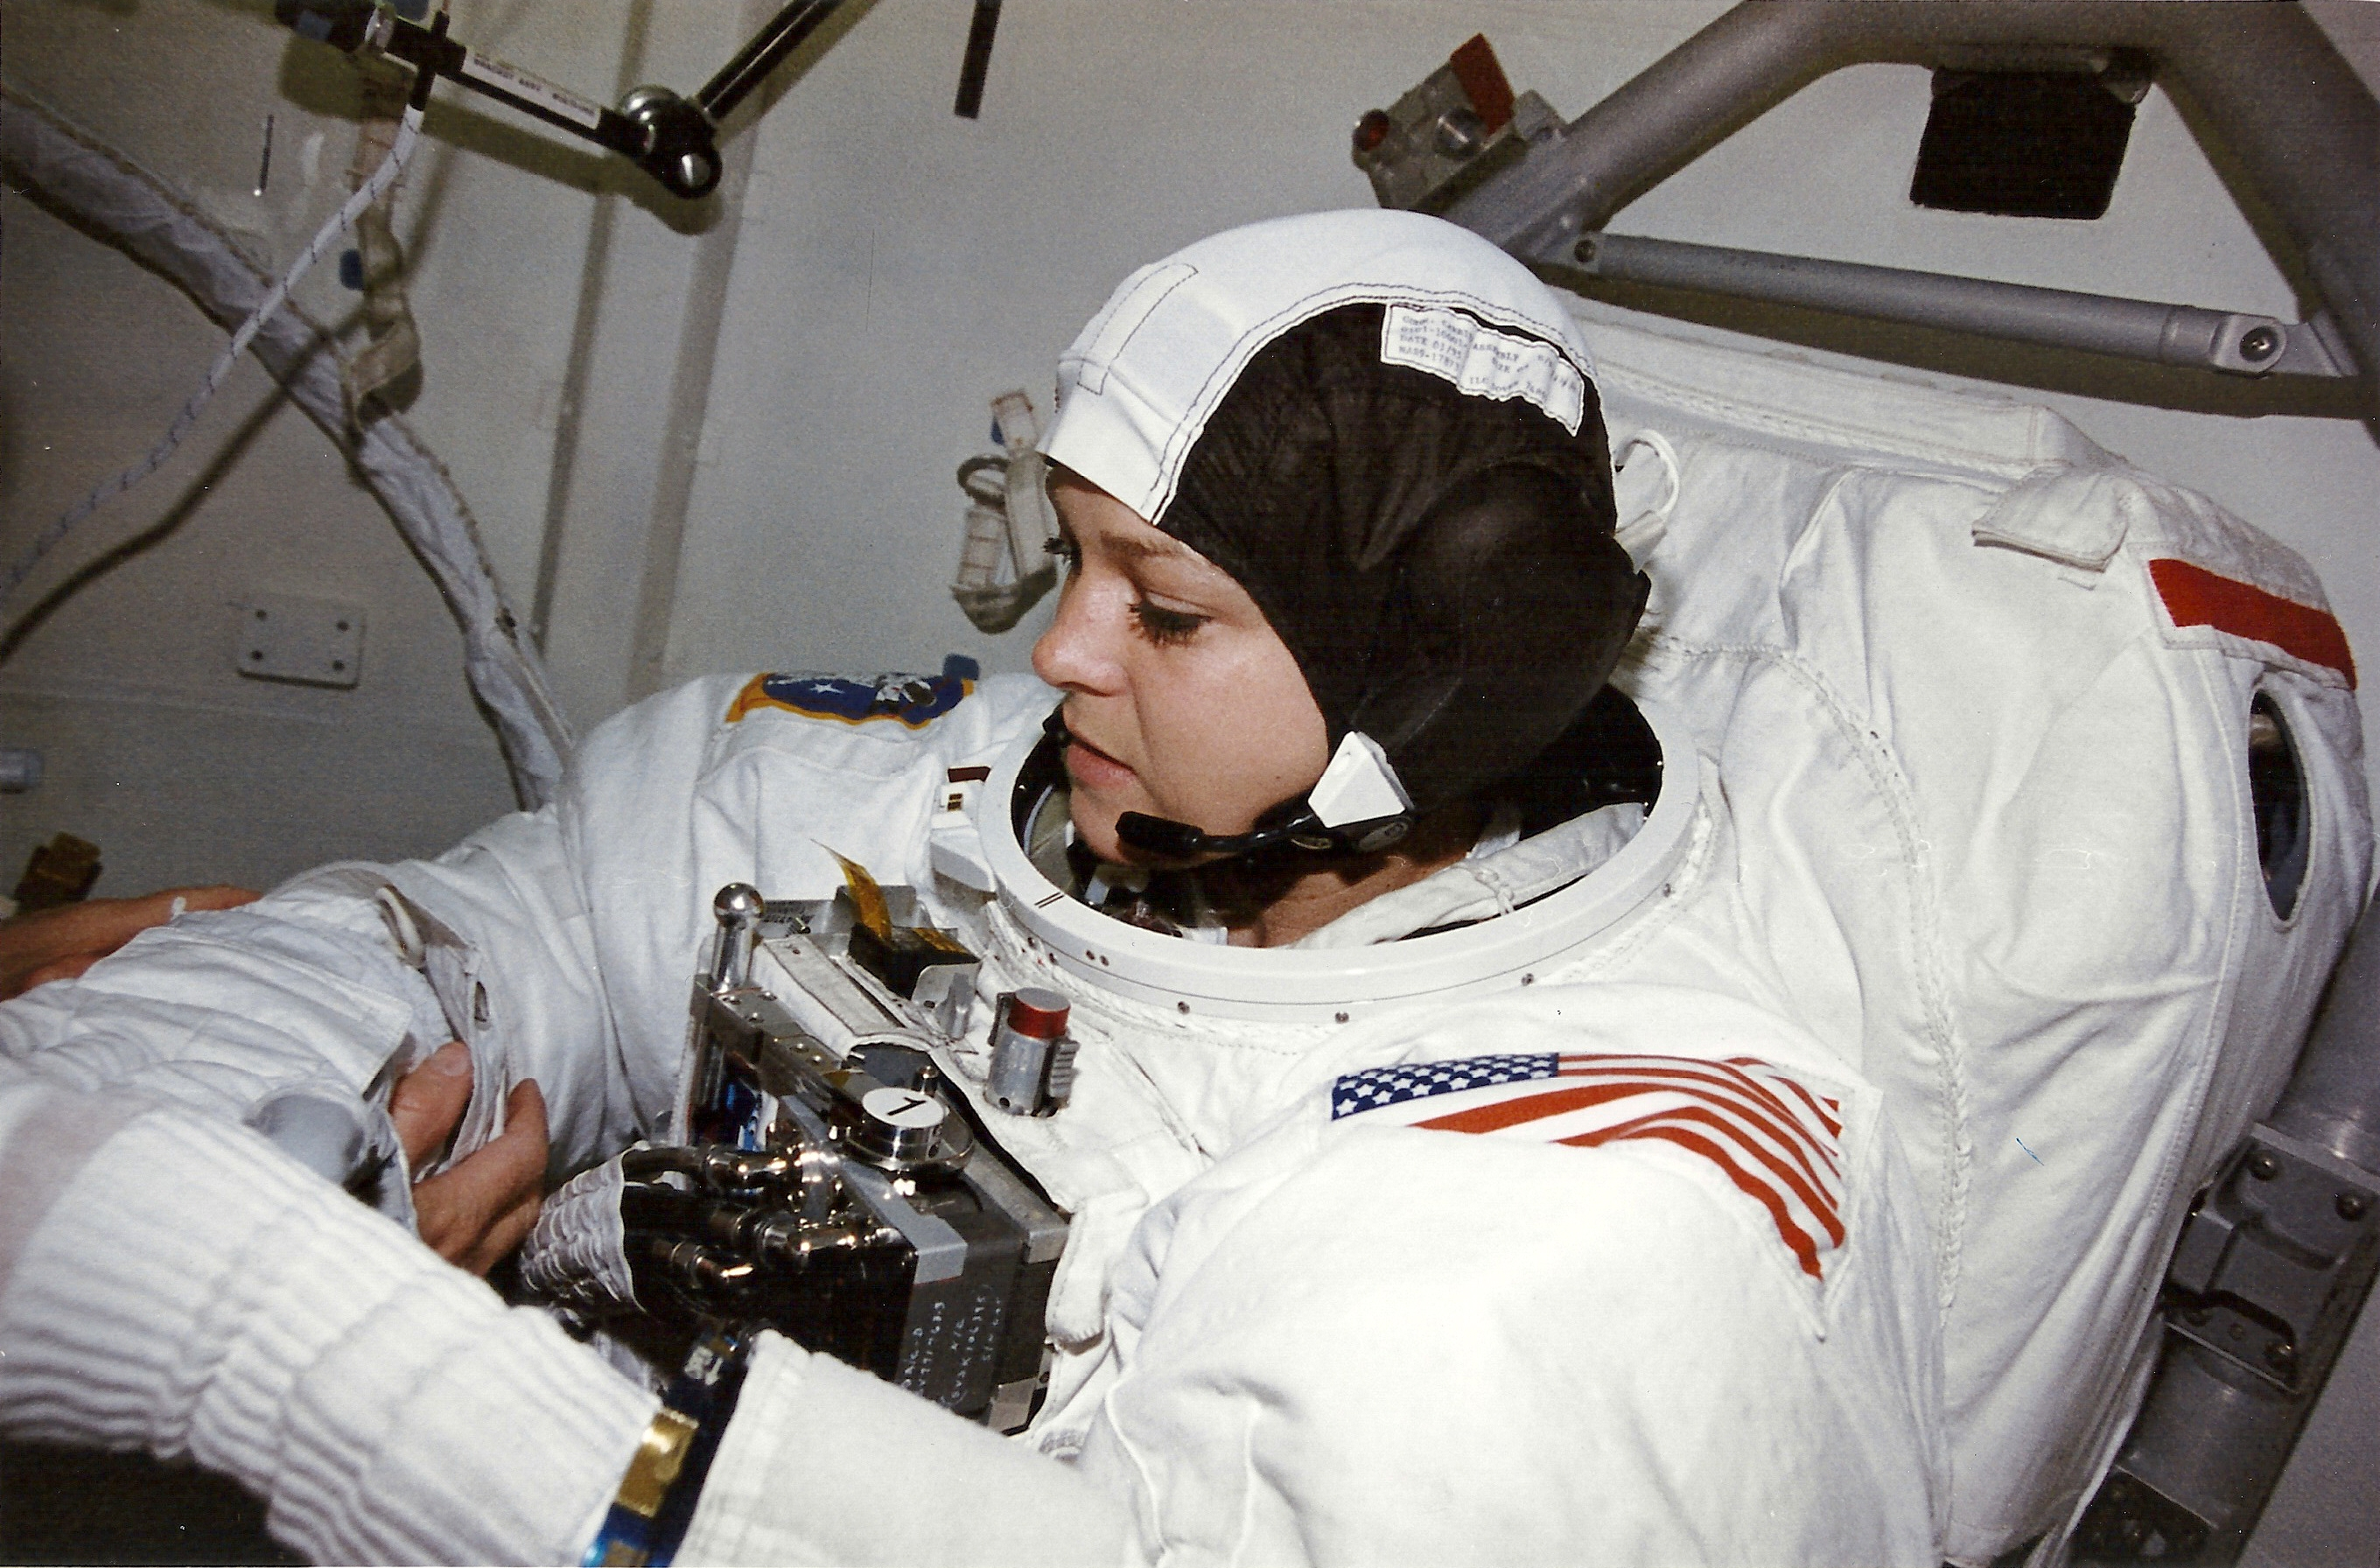 Mission Specialist Tammy Jernigan (PhD) readies for the first of two spacewalks planned on STS-80 (NASA sts080-312-027)